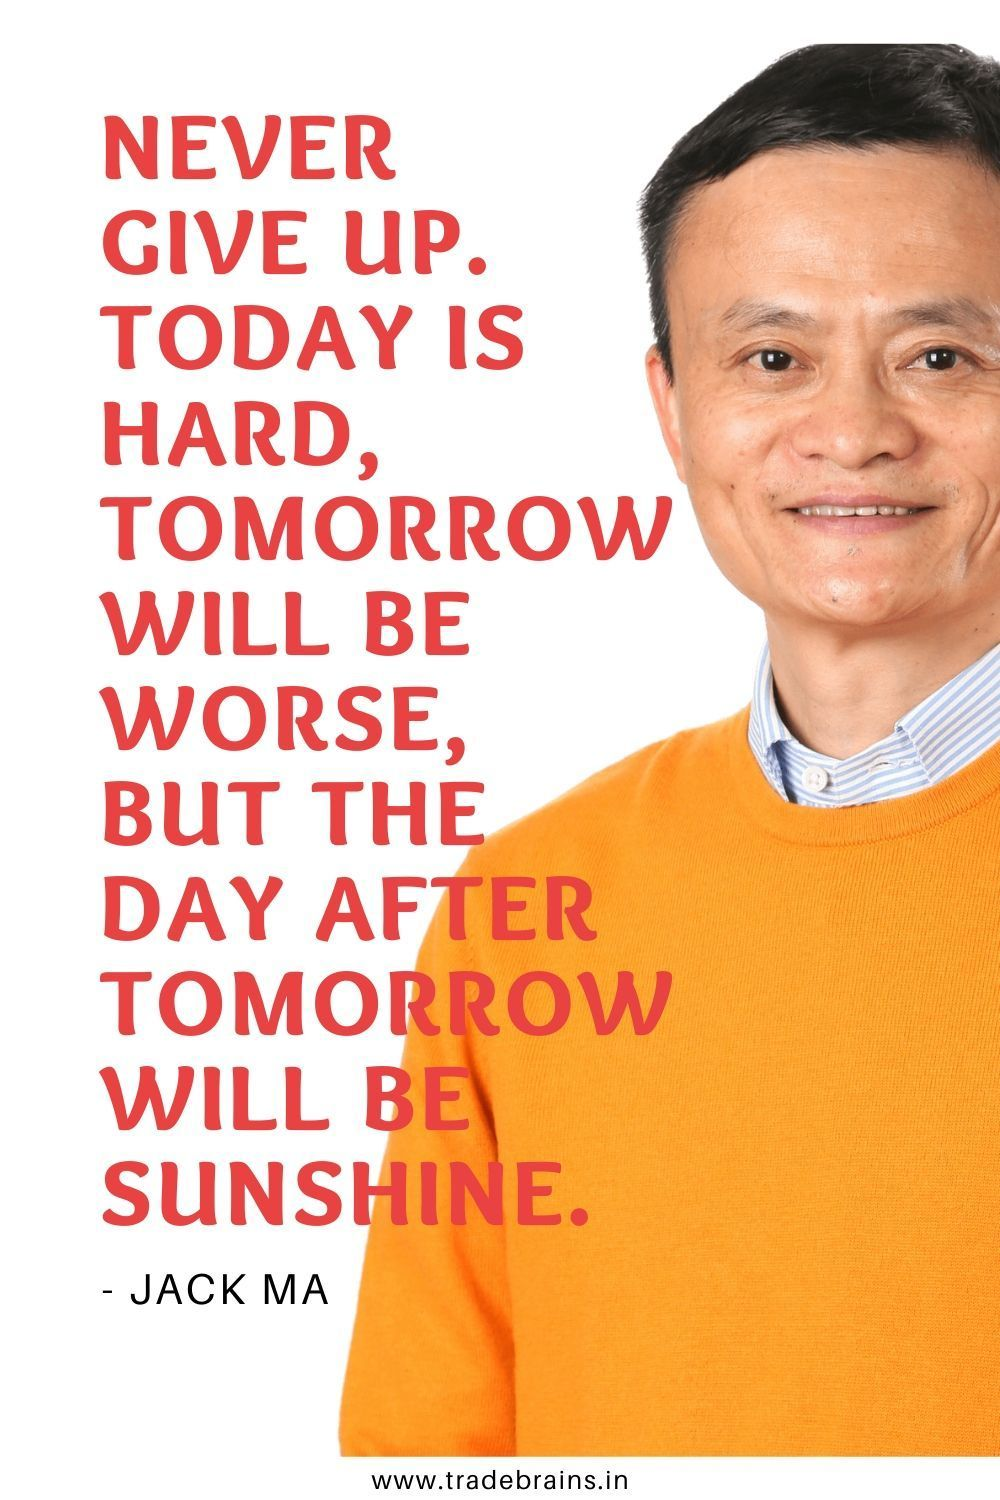 Jack Ma Quotes Investment quotes, Investing, Team building quotes